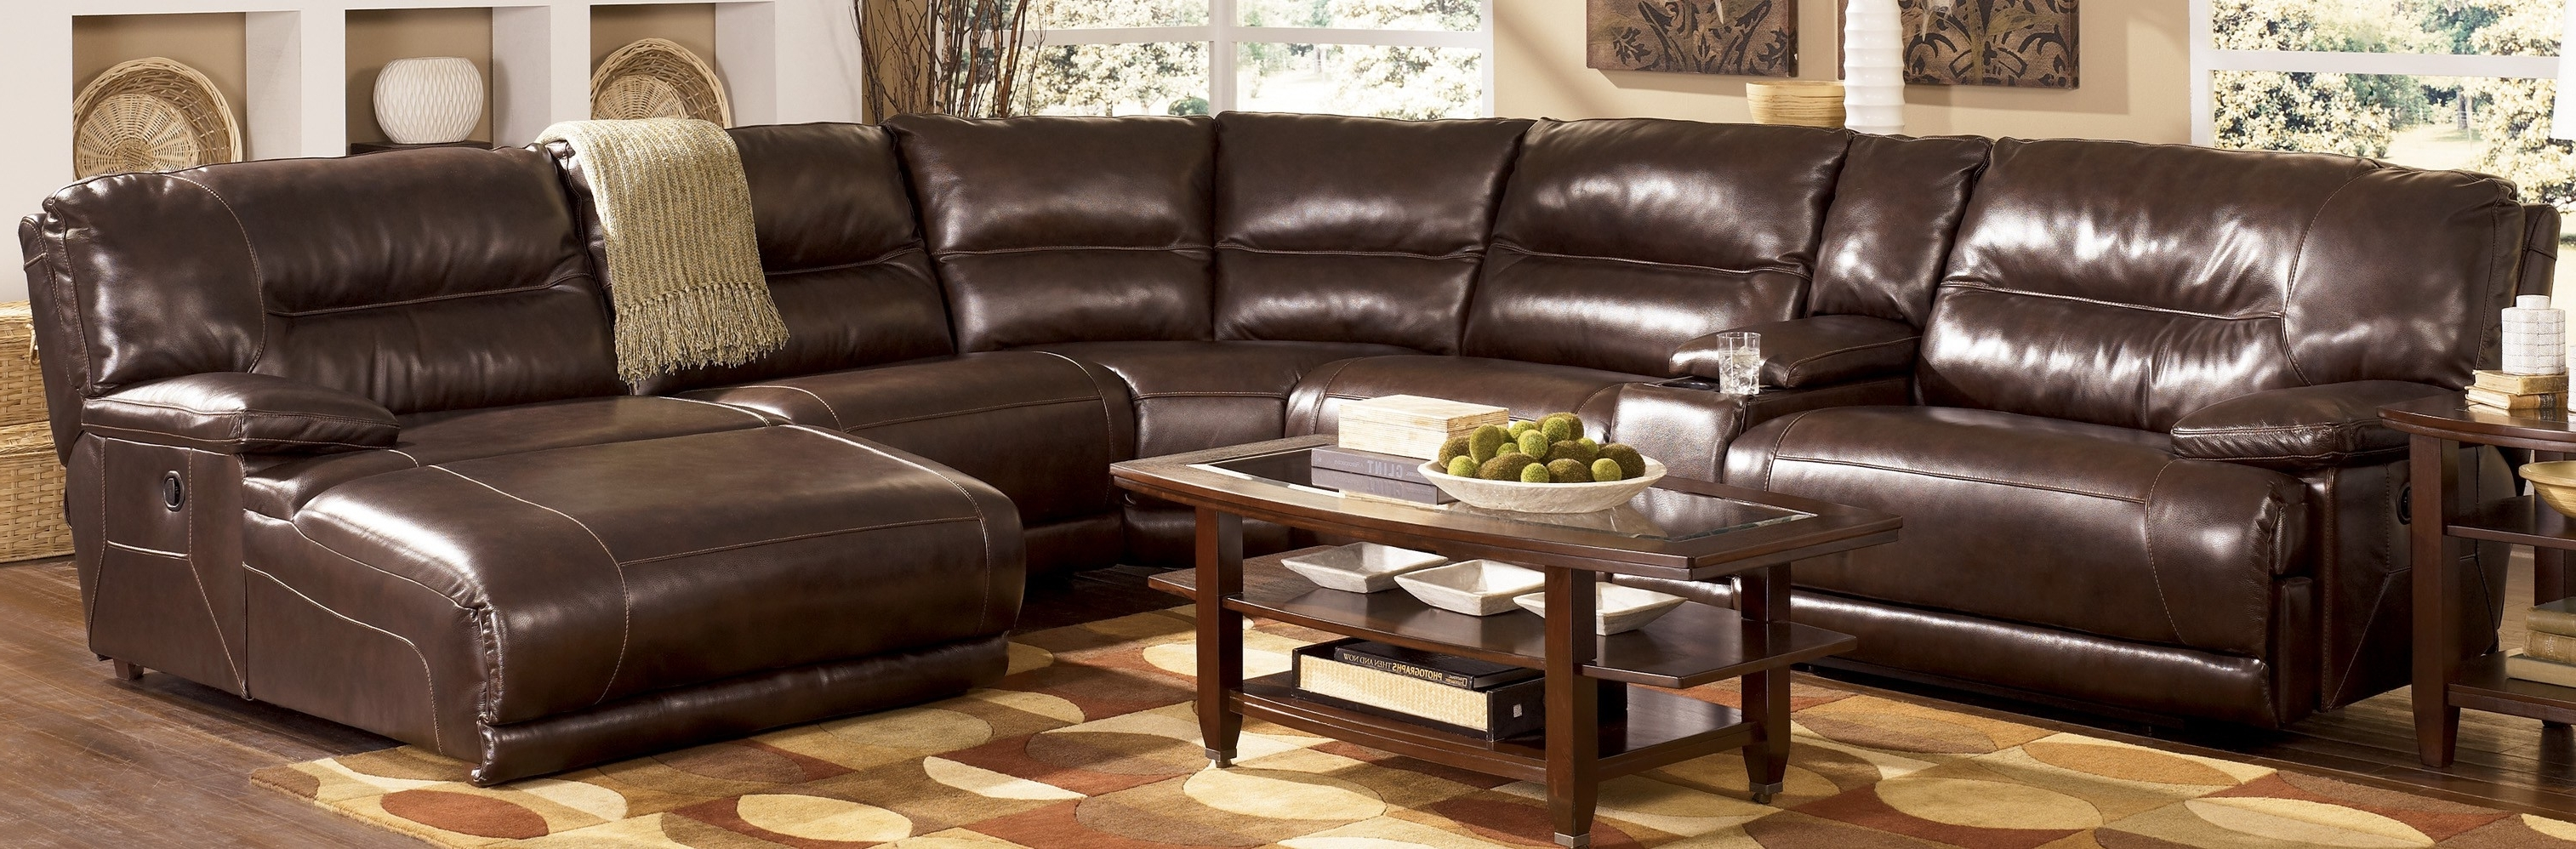 Simmons Chaise Sofas Within Well Known Sofa : Sectional With Recliner And Chaise Lounge Couch Covers For (View 13 of 20)